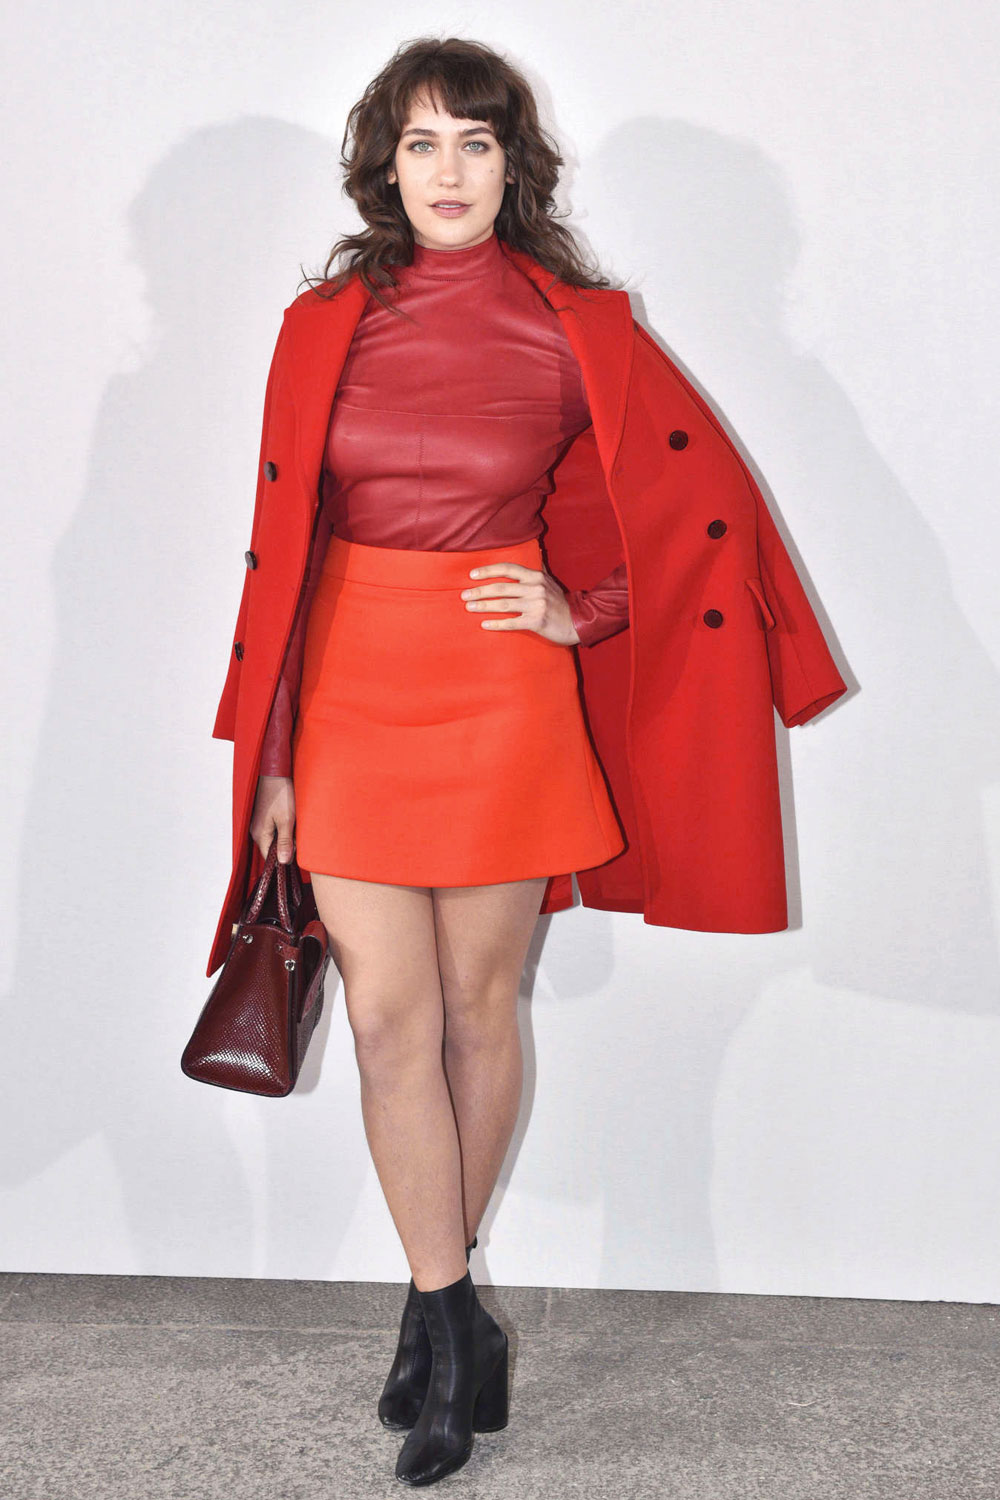 Lola Kirke attends Christian Dior Fashion Show